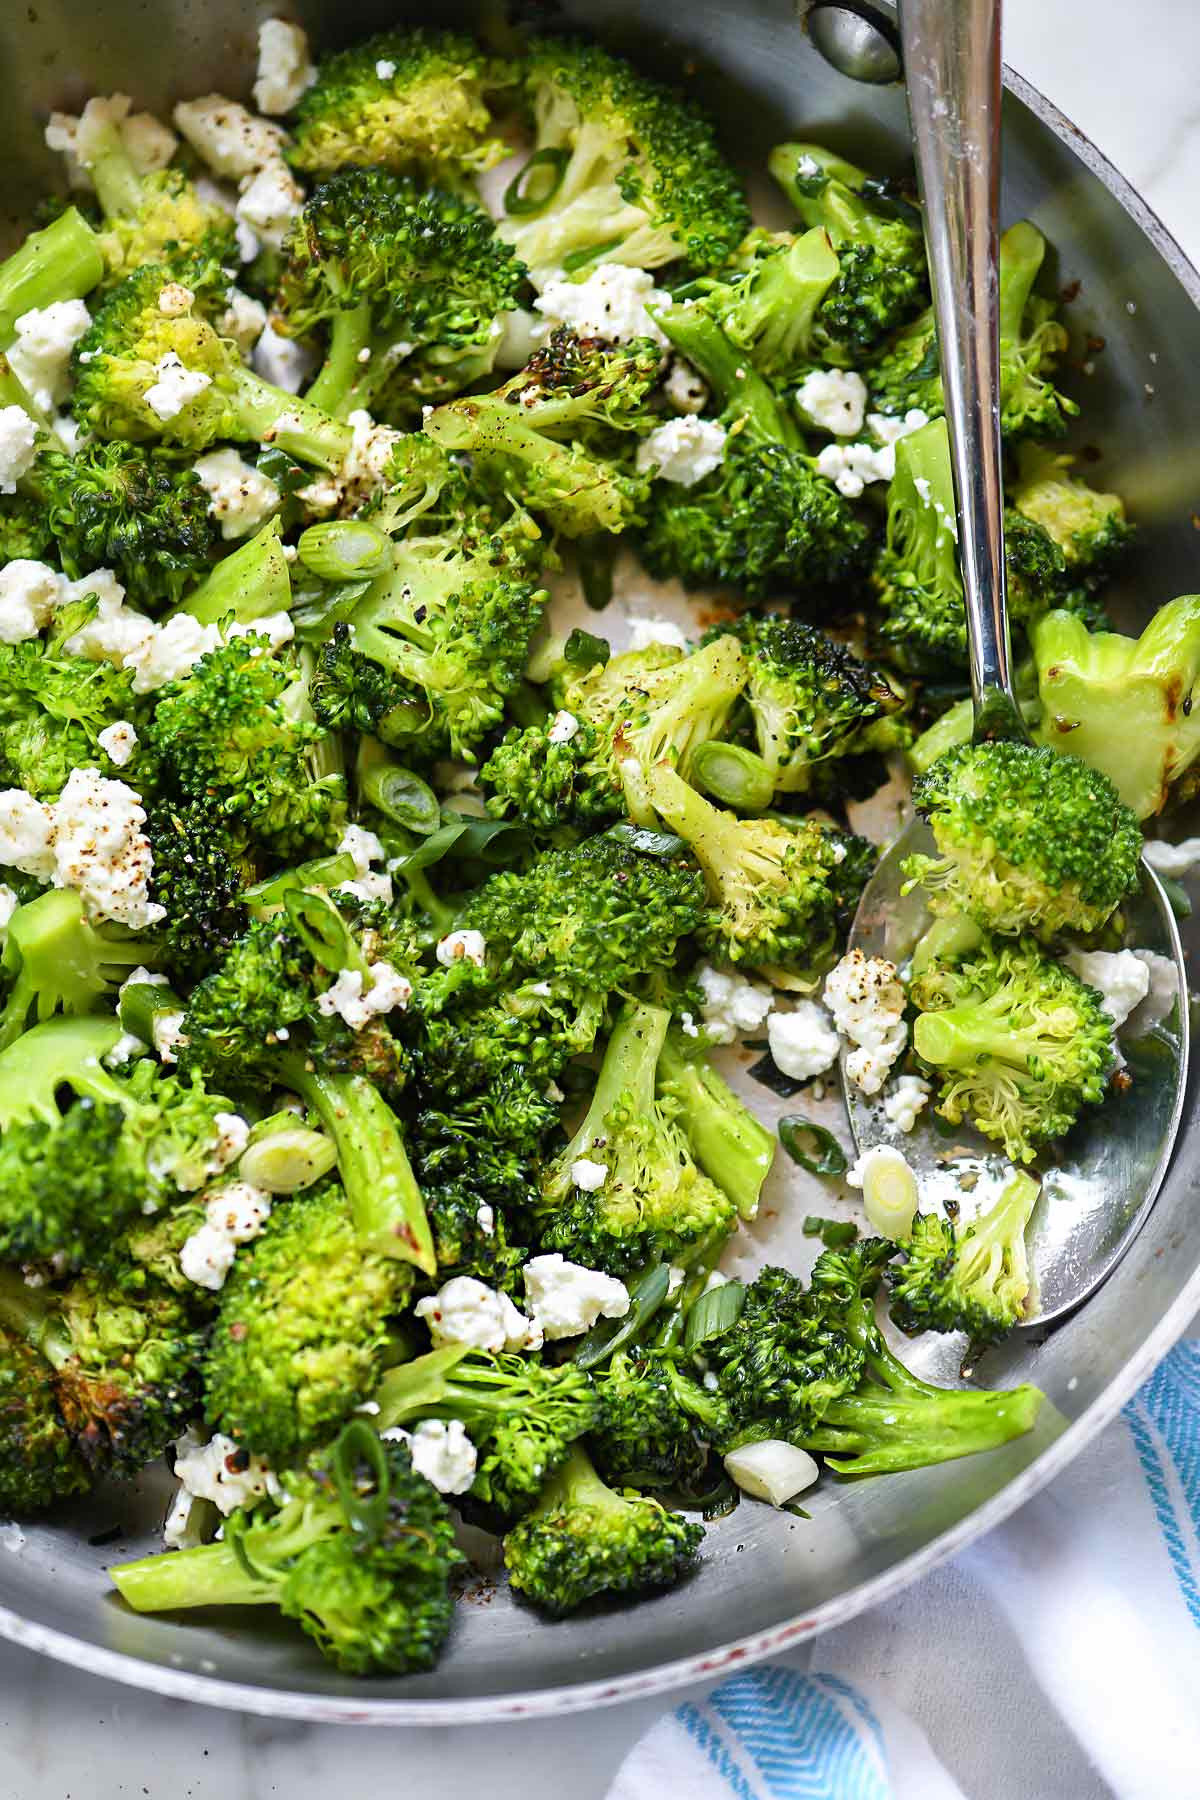 Vegetable Side Dishes Healthy  Easy Broccoli with Feta Cheese